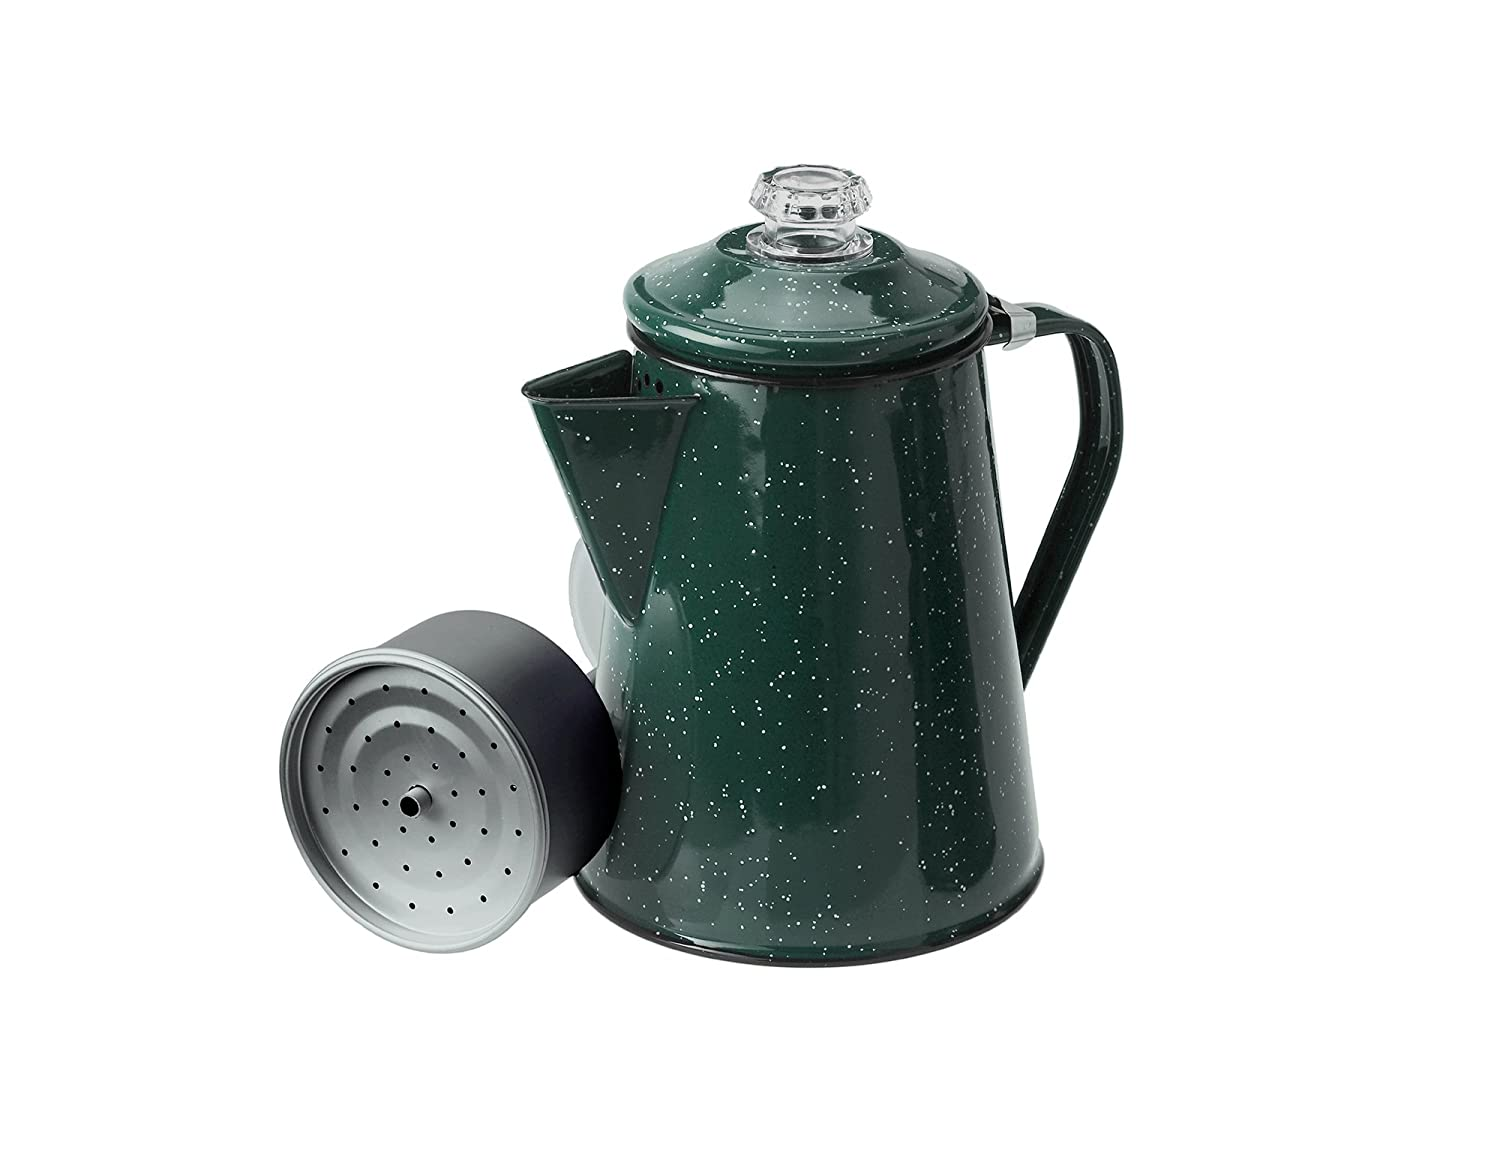 GSI Outdoors 15154 8 Cup Blue Enameled Steel Percolator